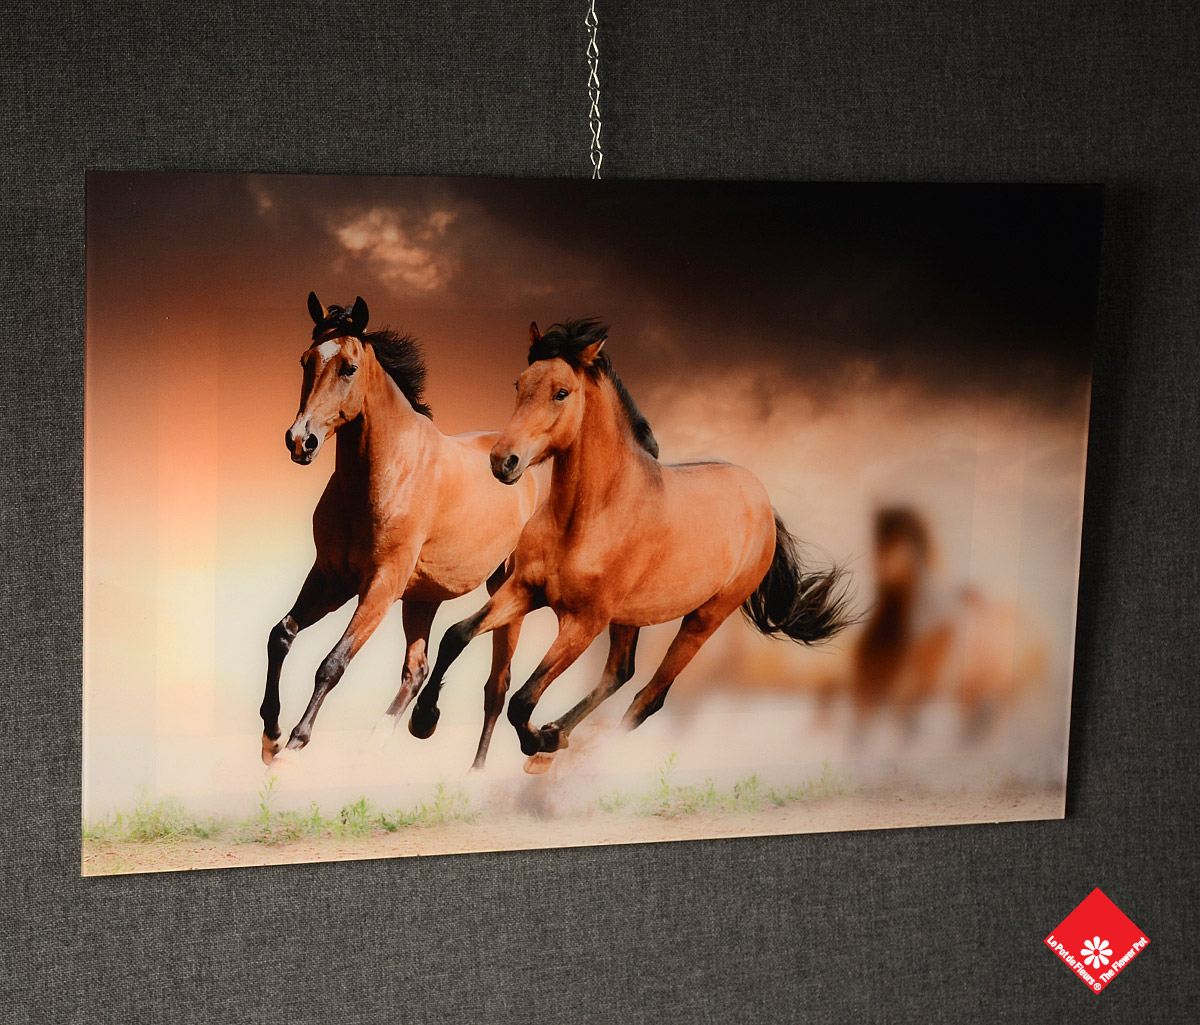 An image on acrylic of the wild beauty of running horses for your wall.